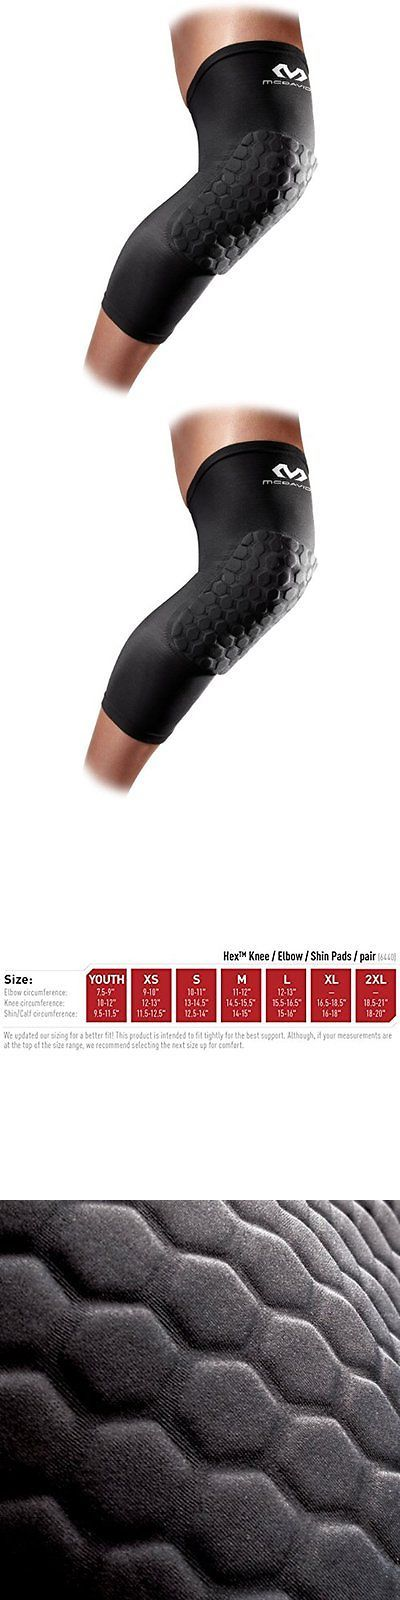 Protective Gear 158969: Mcdavid 6446 Sports Fitness Features Extended Compression Leg Sleeve With Hexpad -> BUY IT NOW ONLY: $38.87 on eBay!